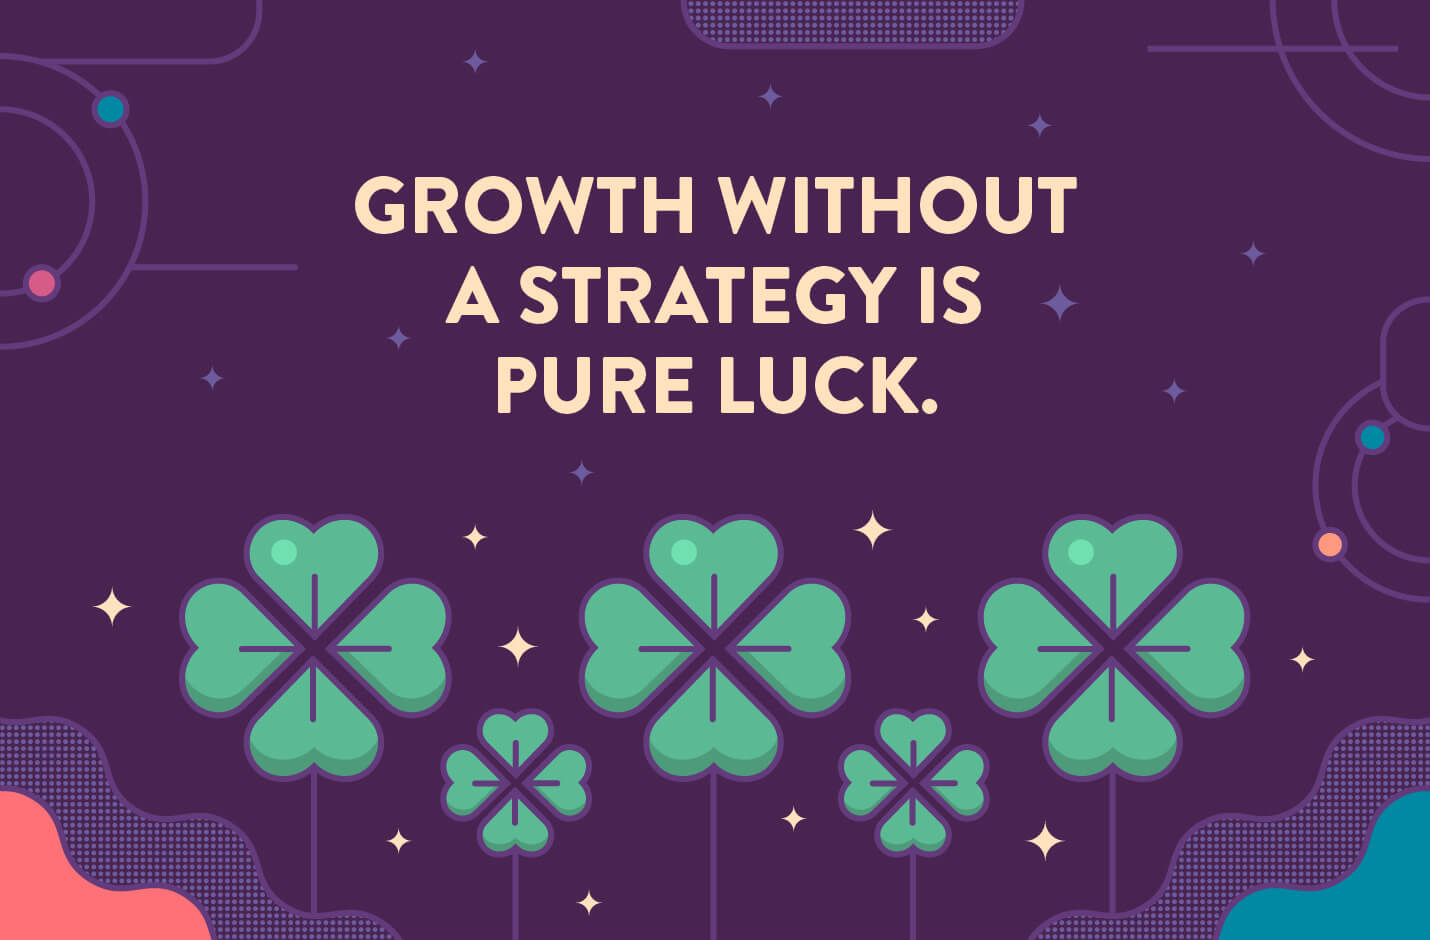 quote with 4 leaf clovers where growth without a strategy is pure luck